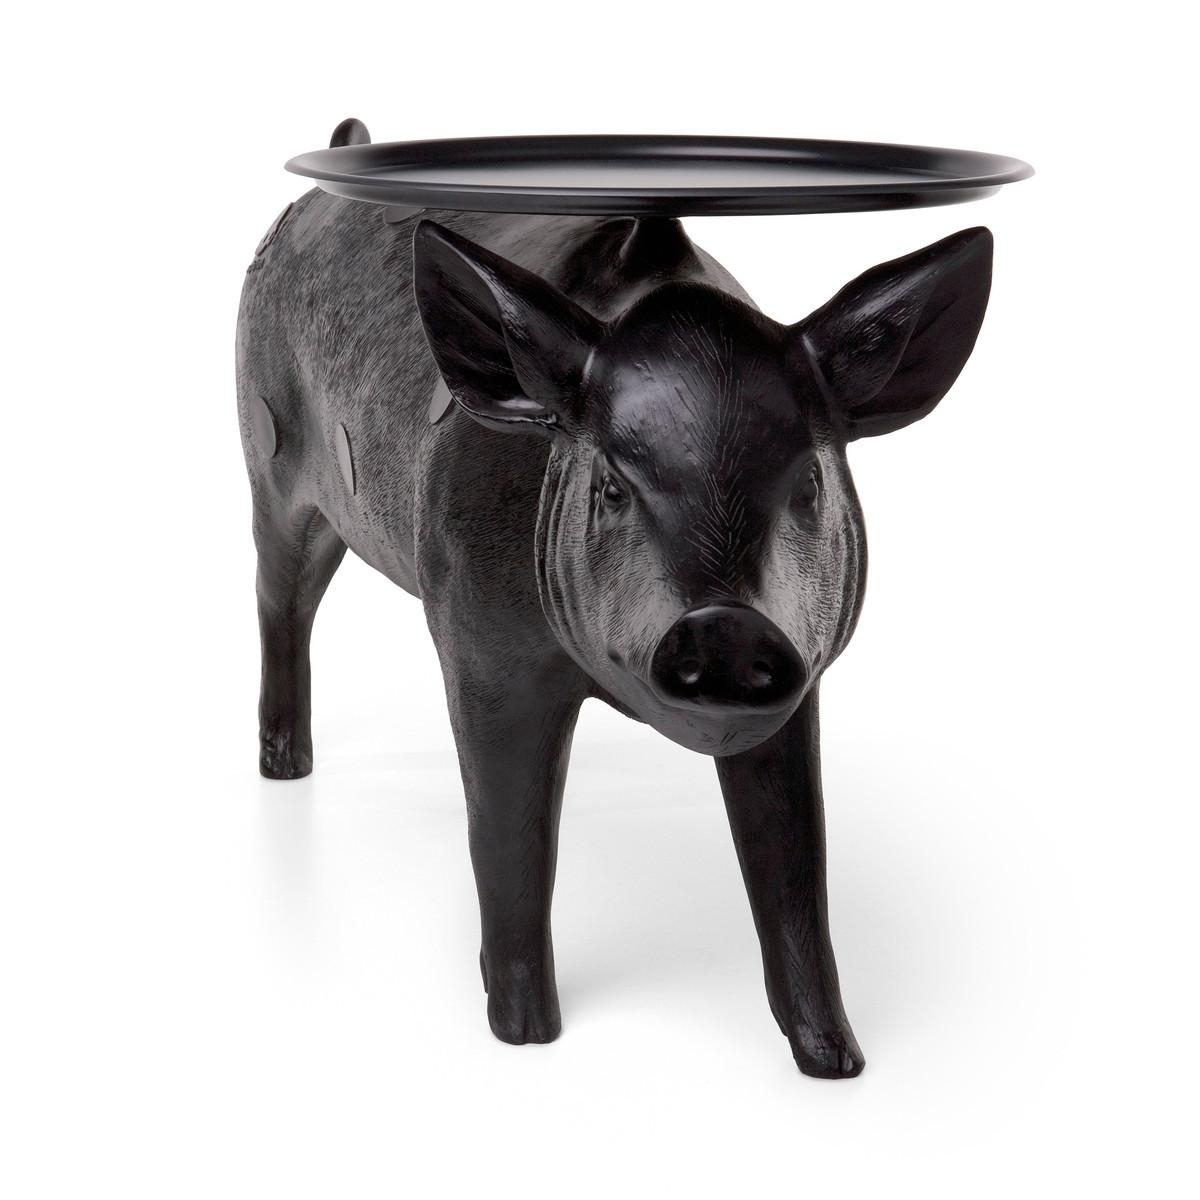 Pig Table Front